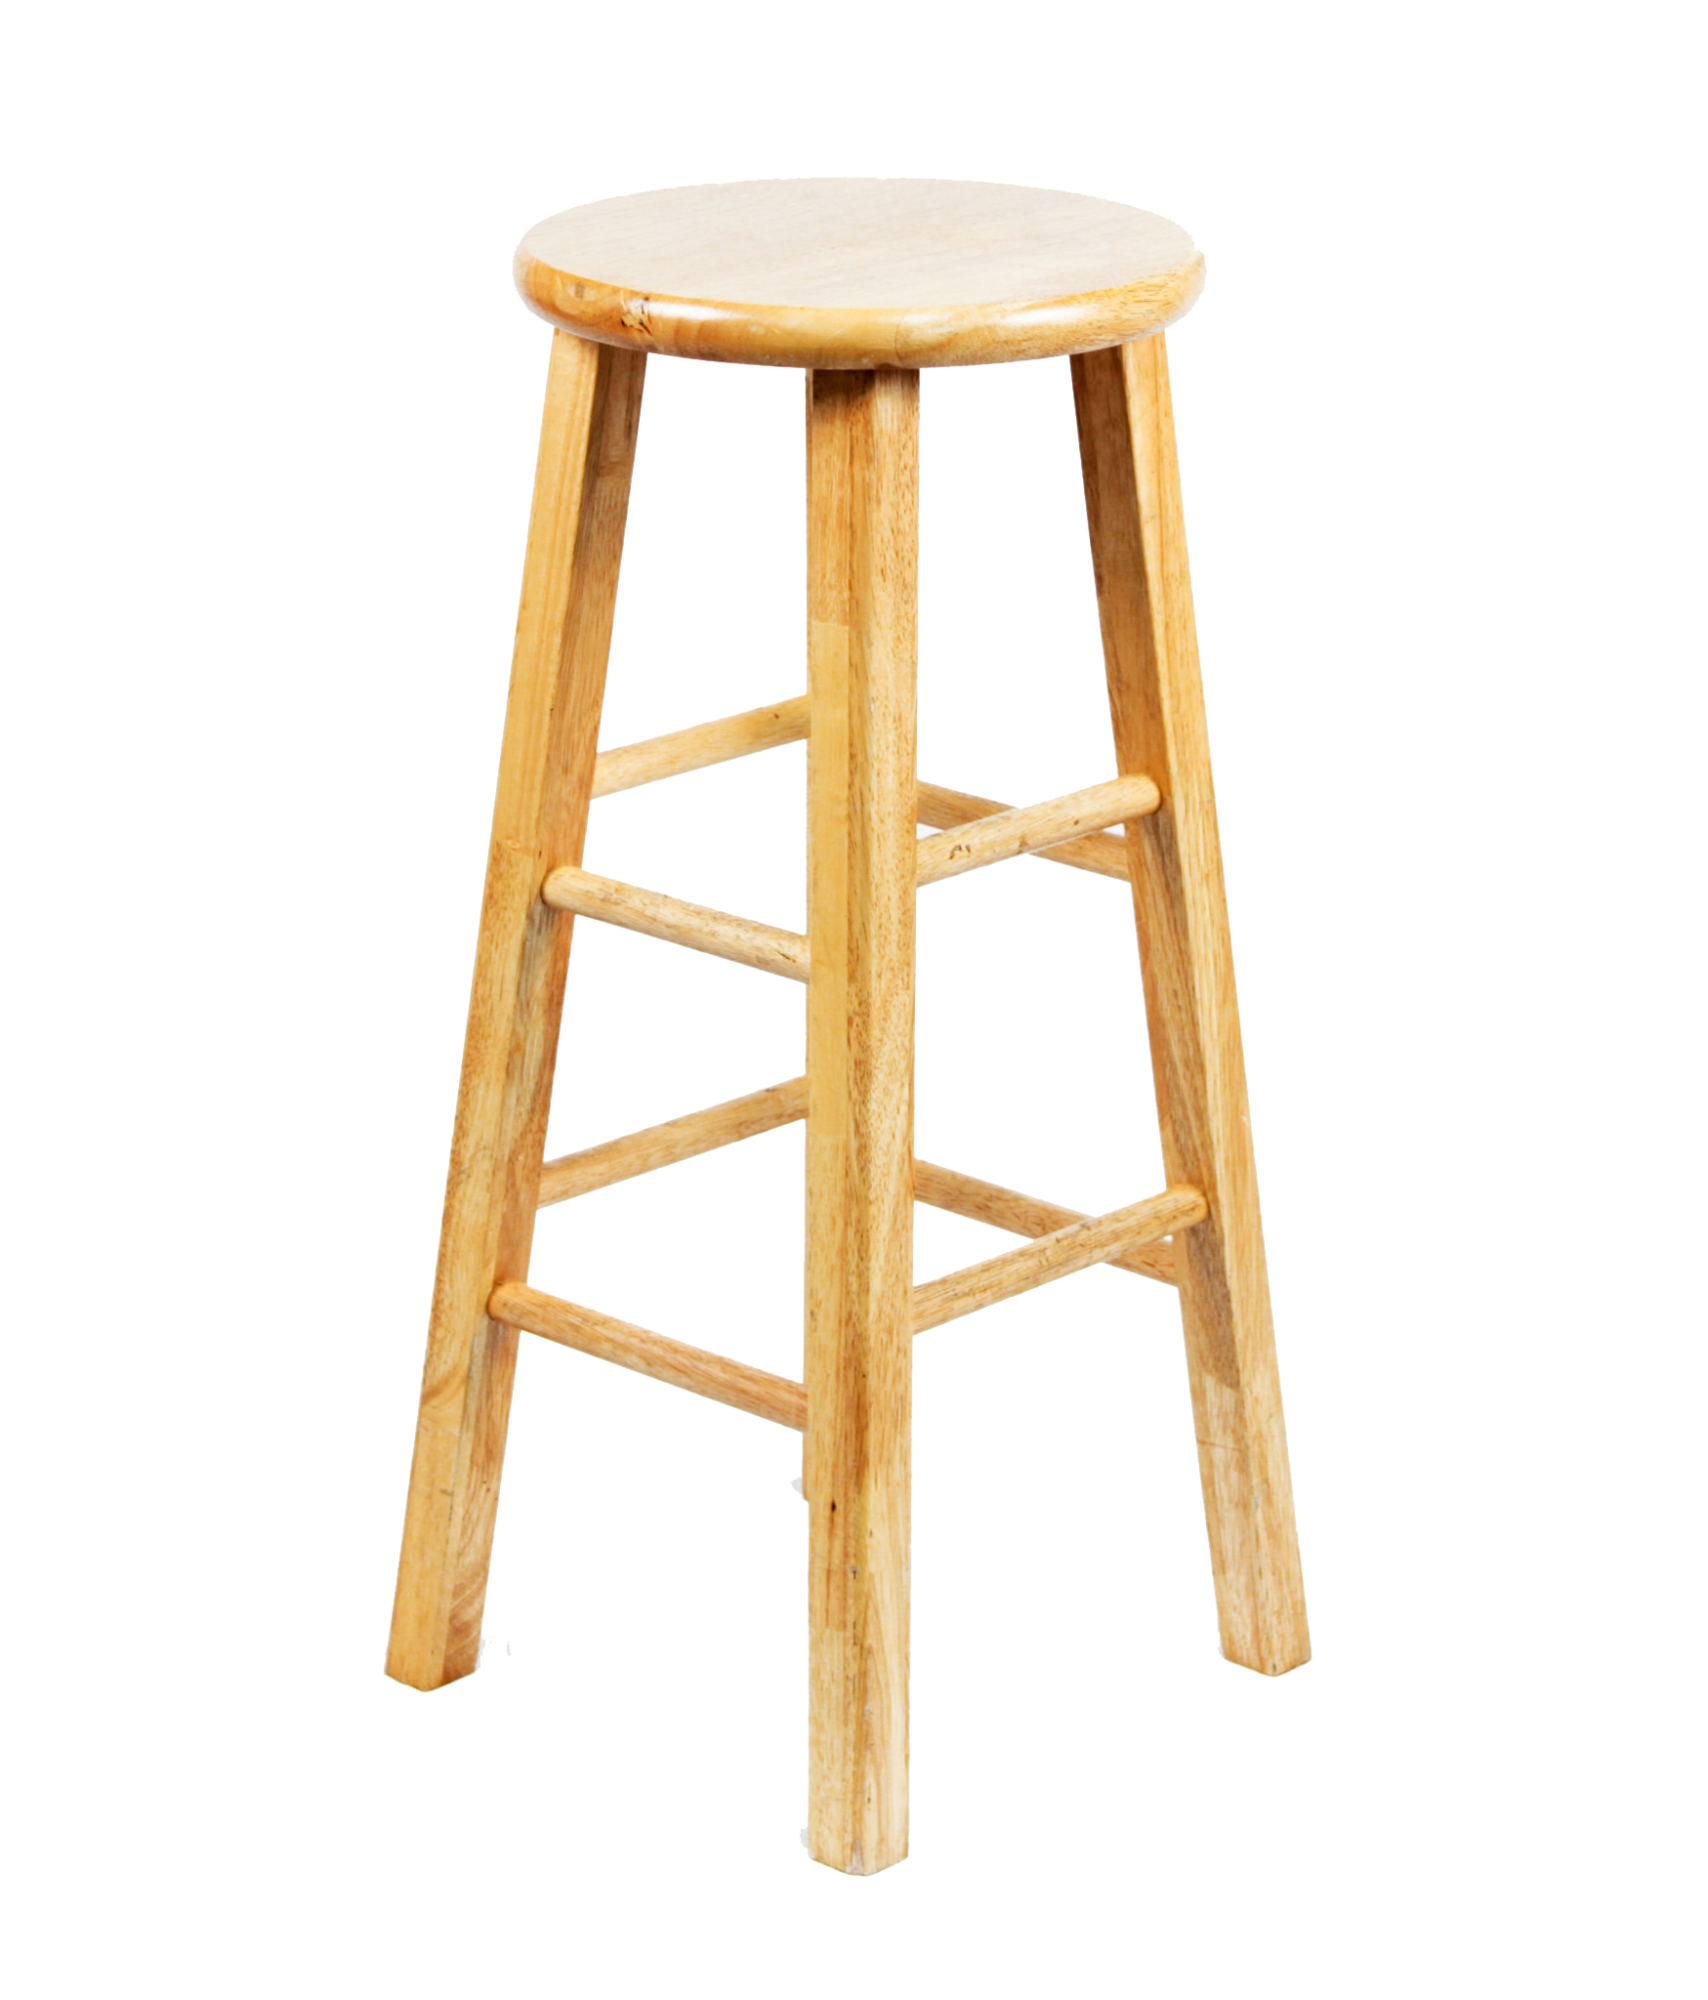 Tremendous Wood Spindle Bar Stool Without Back Natural Peter Uwap Interior Chair Design Uwaporg